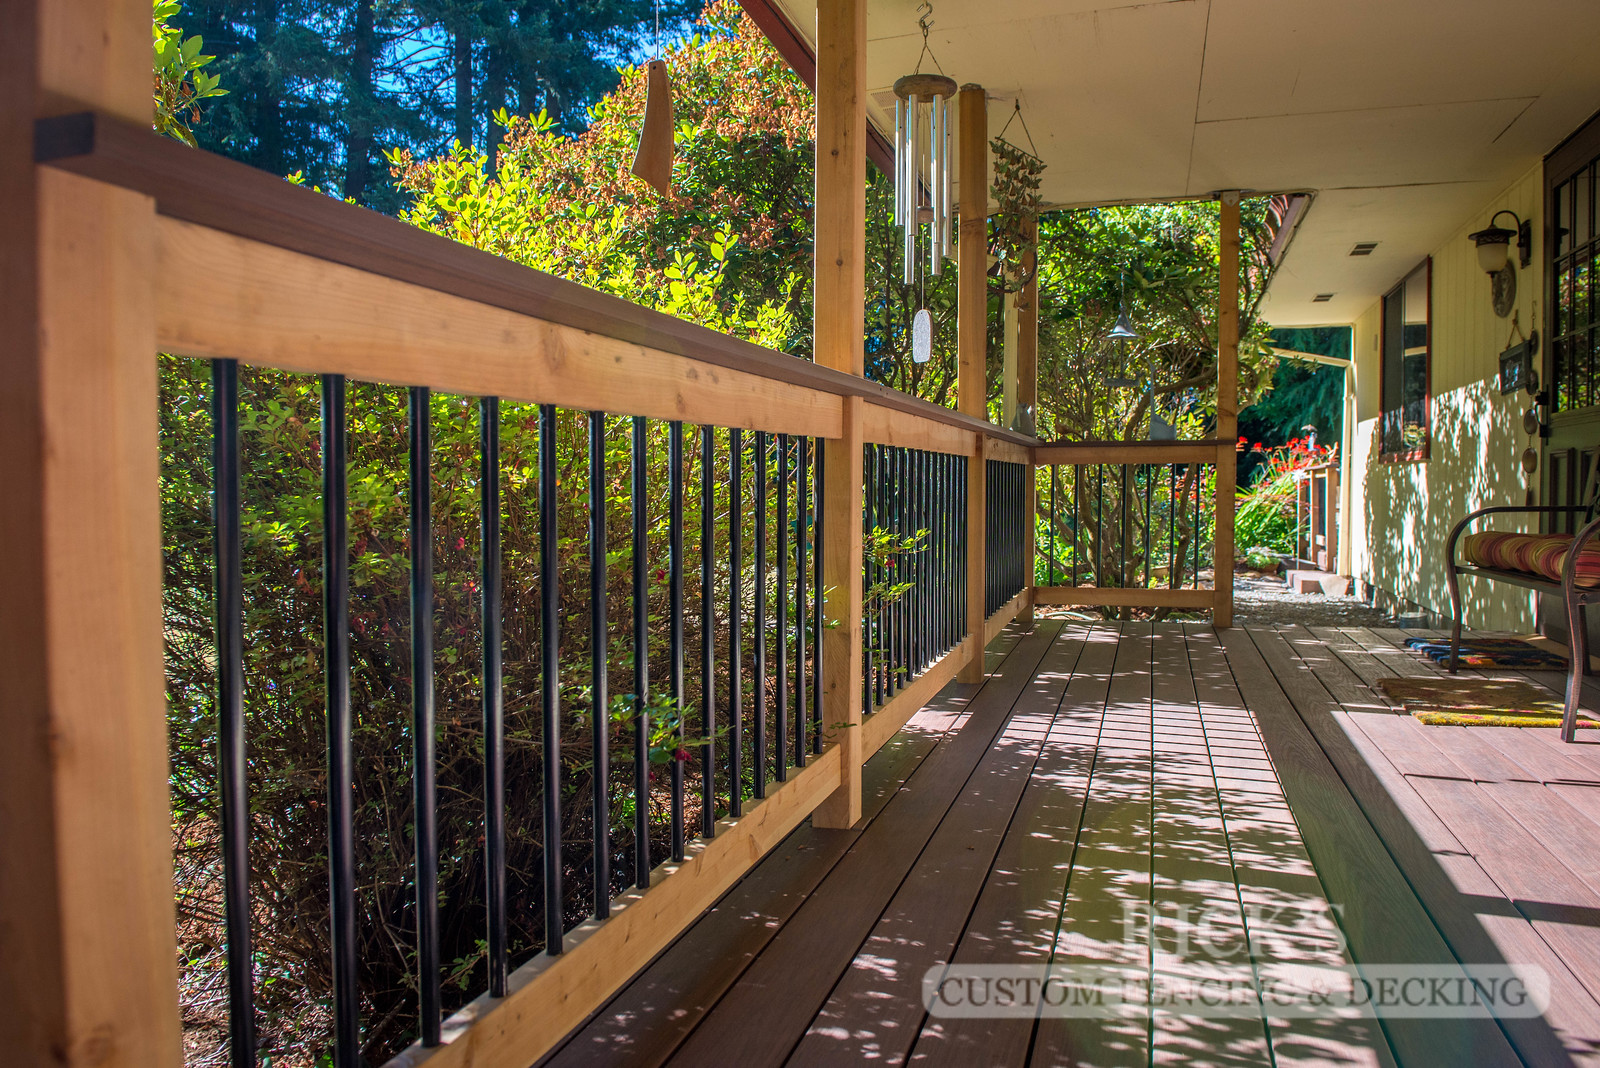 1532 - Cedar Handrail with Aluminum Balusters